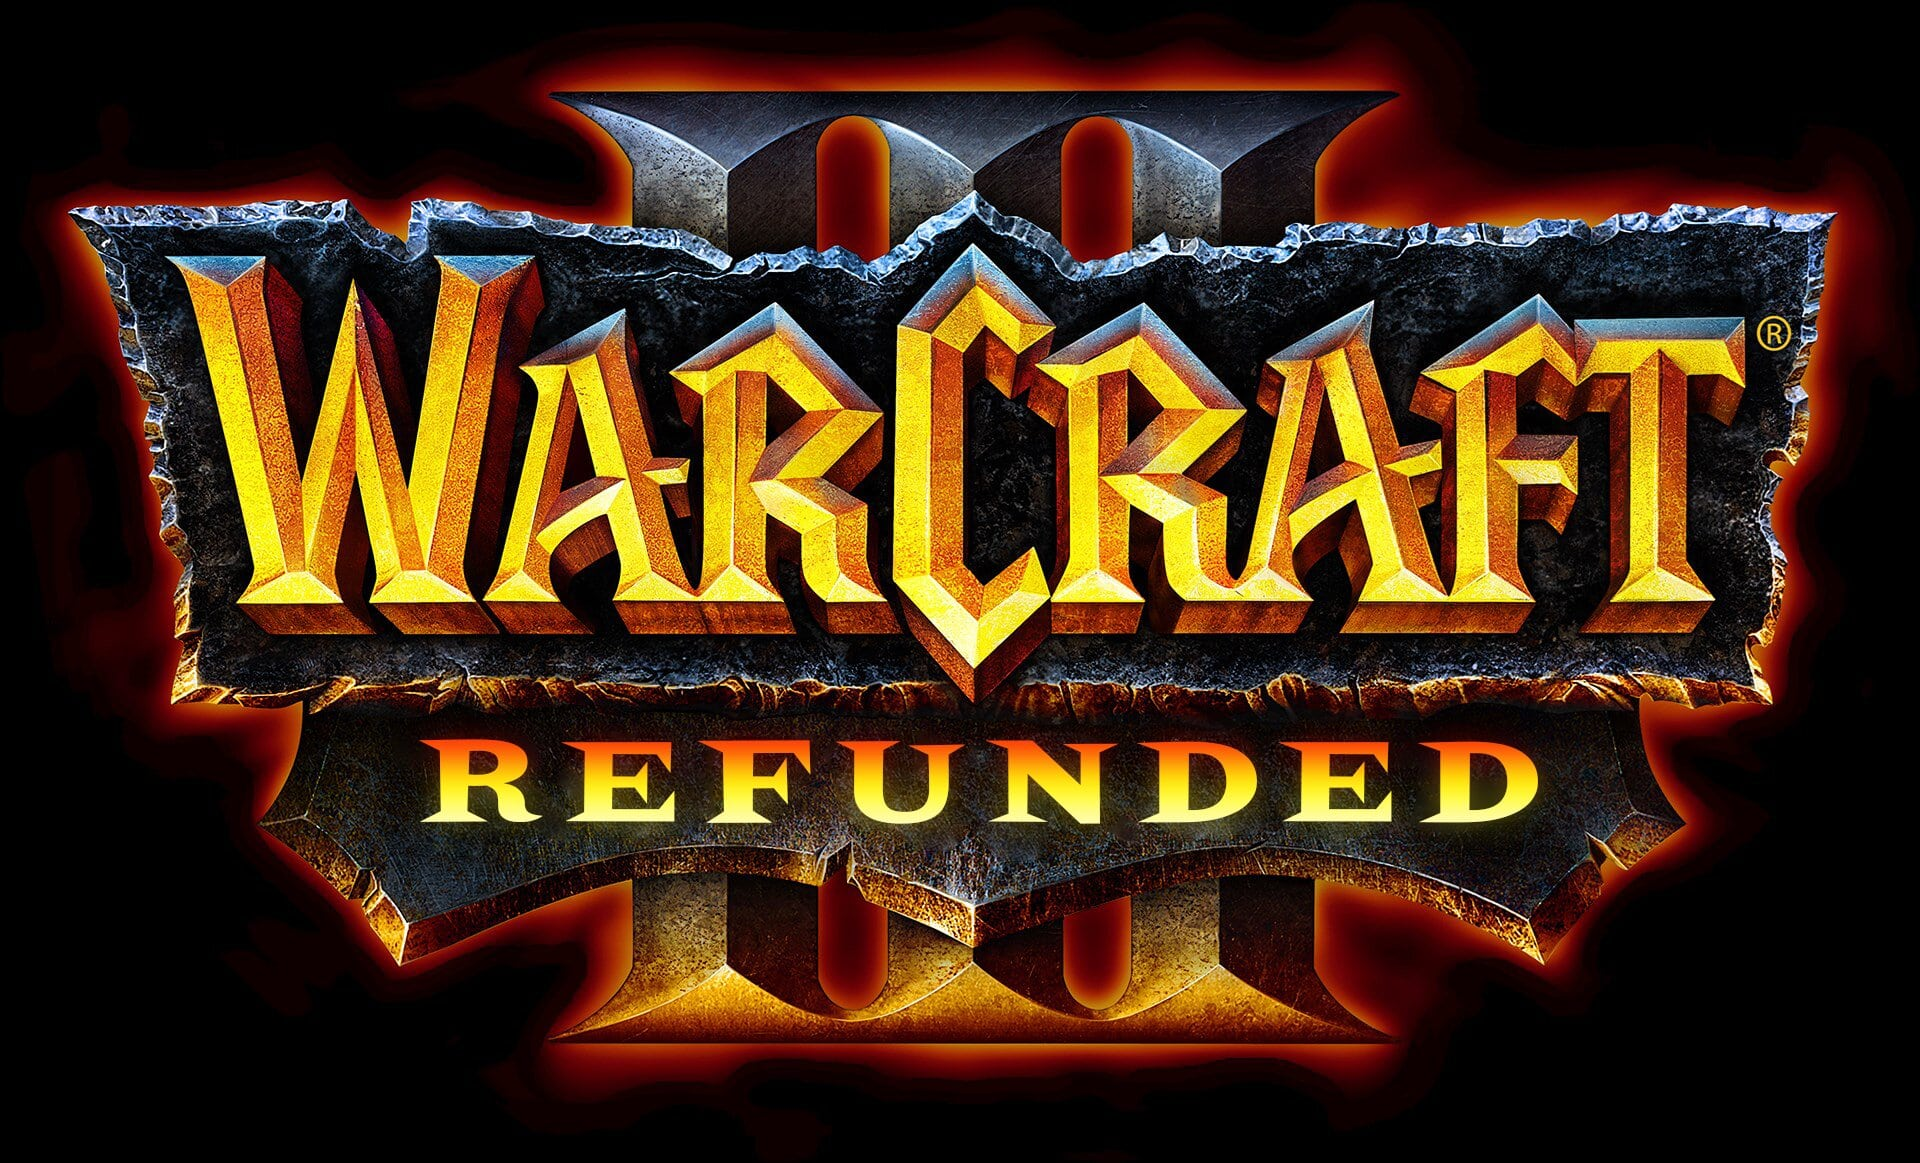 Warcraft III: Reforged a jeho nepovedený start Warcraft III Refunded